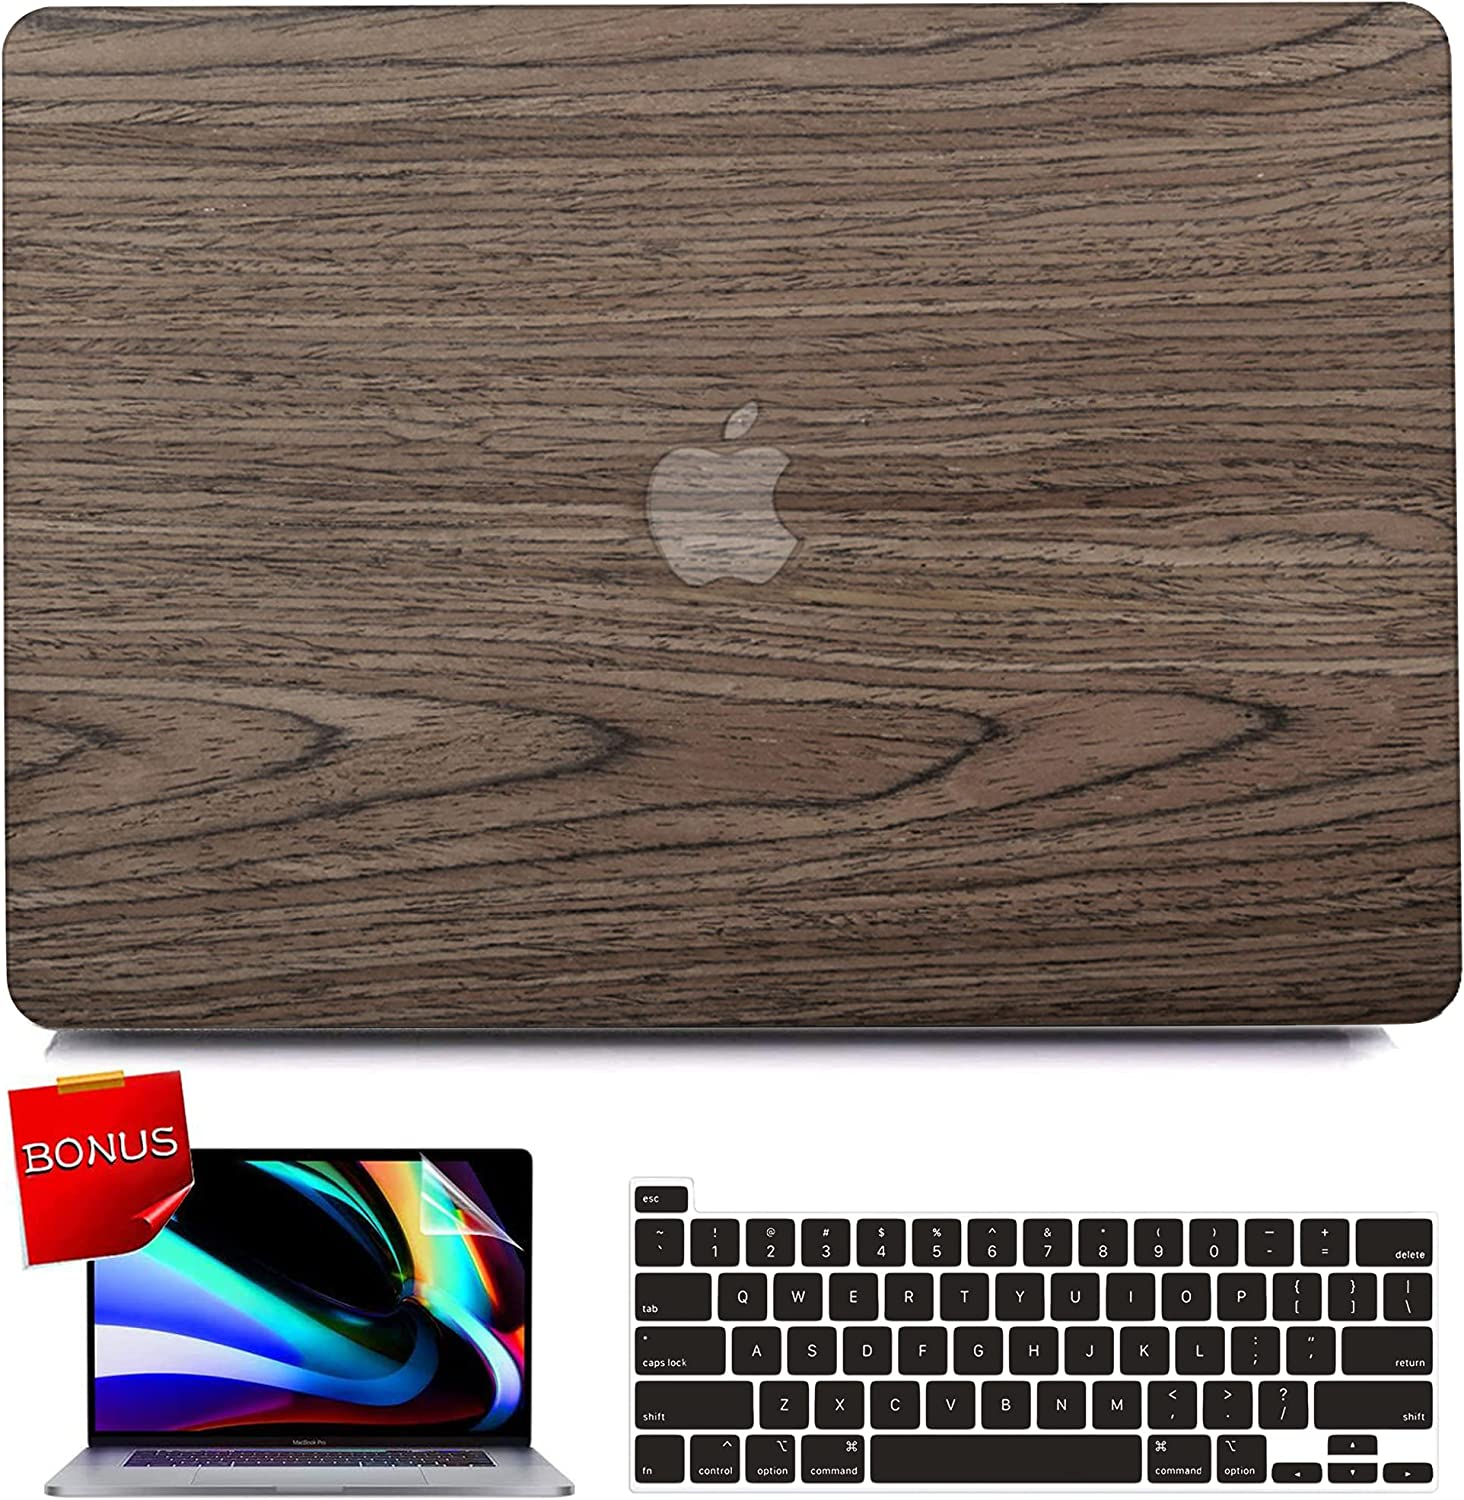 iPAPA Compatible with MacBook Pro 13 inch Case 2020 2019 2018 2017 2016 Release A2338 M1 A2289 A2251 A2159 A1989 A1708 A1706 Touch Bar, Wood Laptop Hard Shell Case + Keyboard Cover + Screen Protector